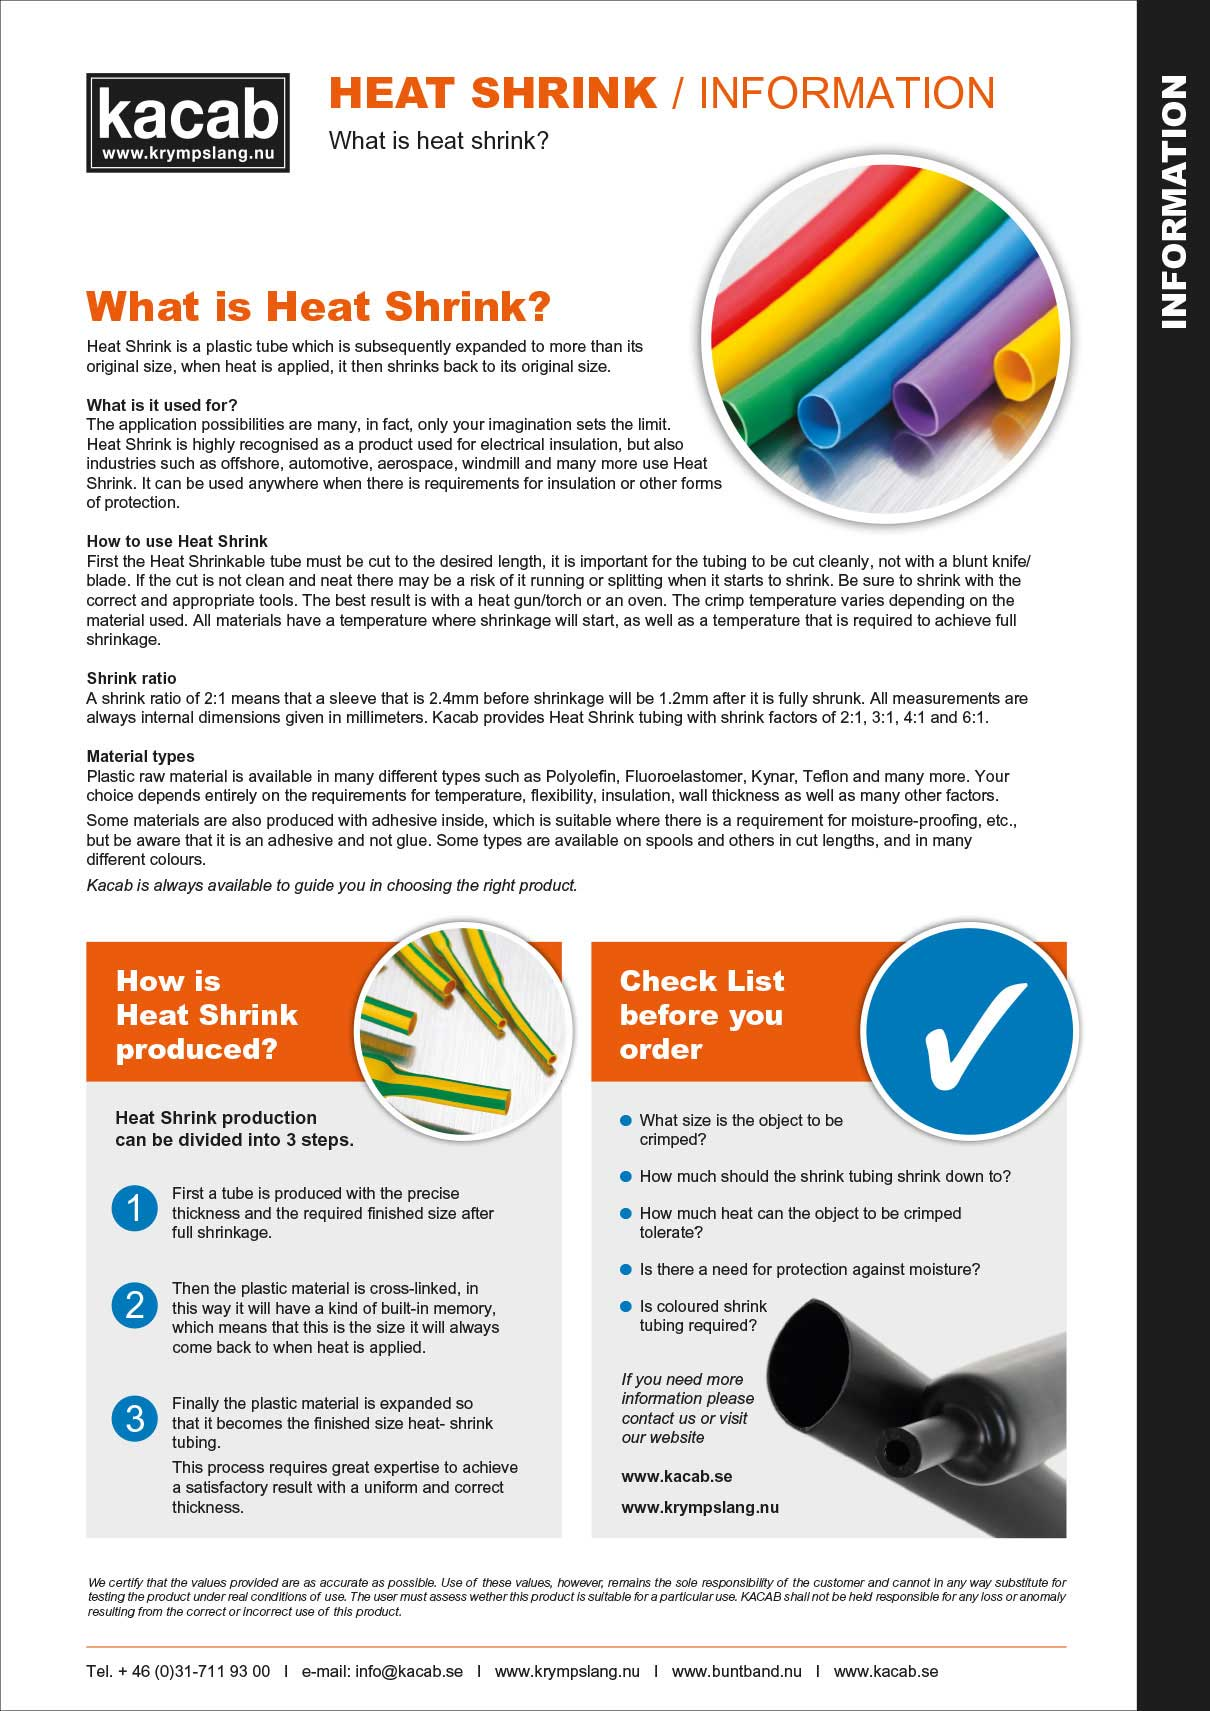 Guide to our Heat Shrink Tubing